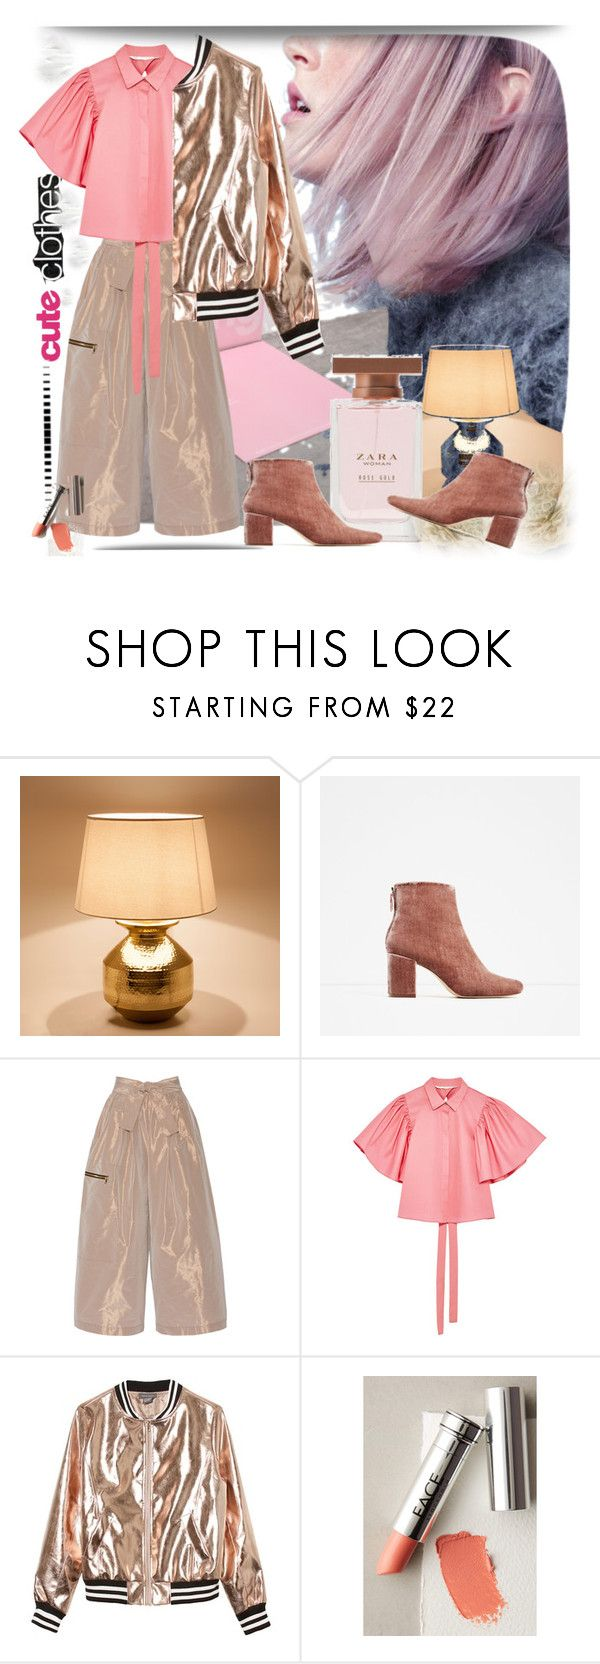 """""""Untitled #1490"""" by hannah353 ❤ liked on Polyvore featuring Zara Home, Tome, Sans Souci, FACE Stockholm and J Brand"""